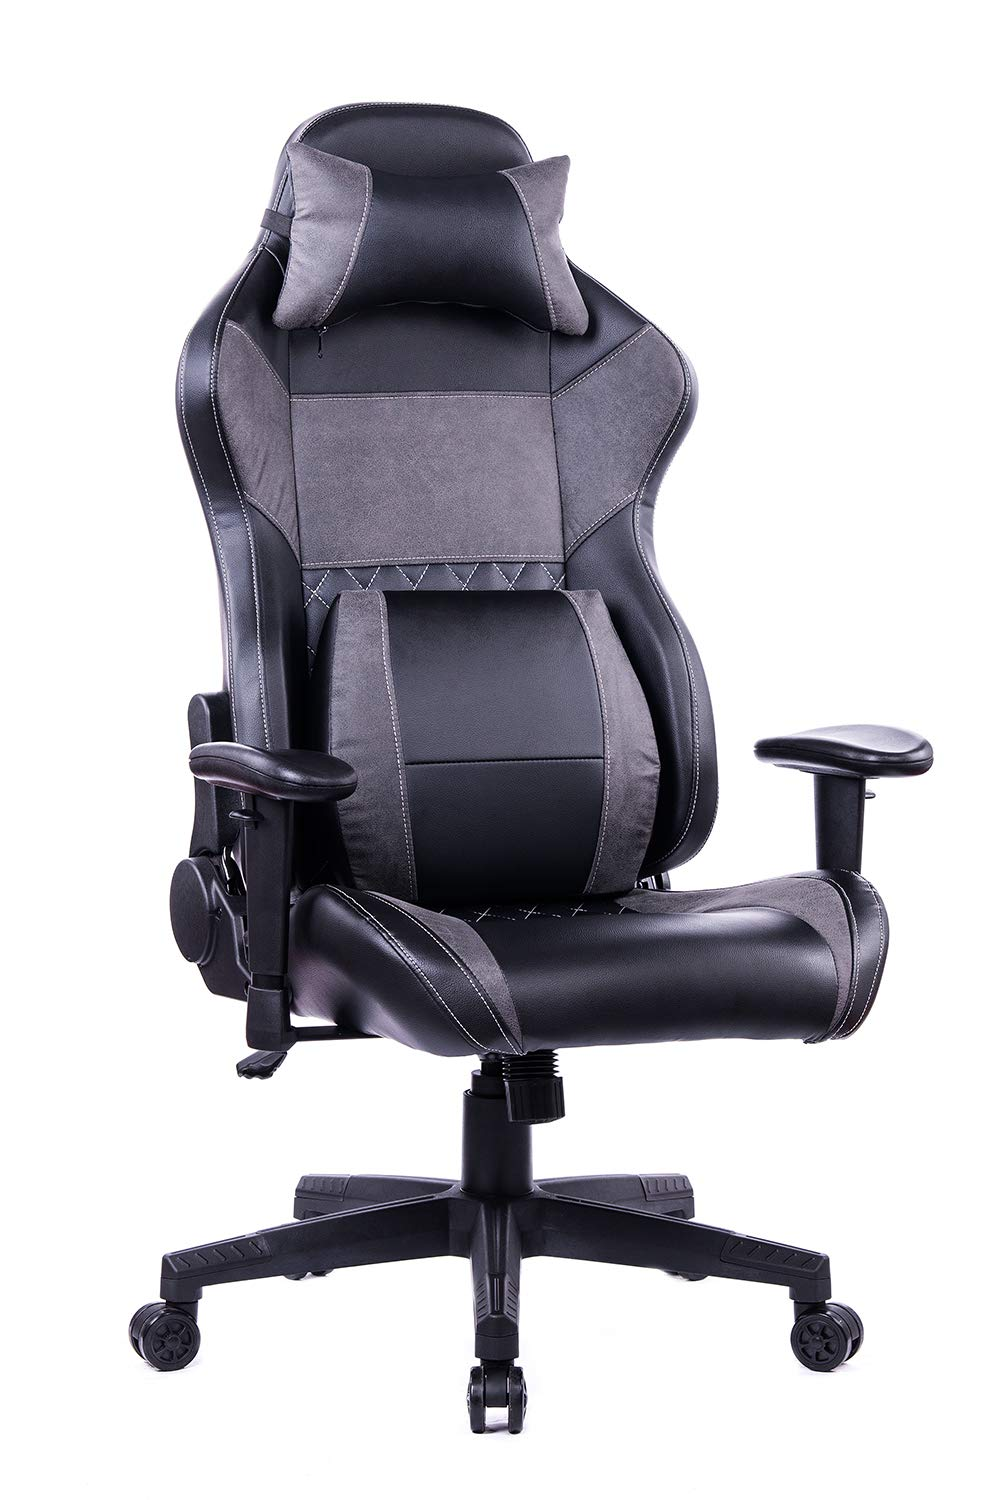 HEALGEN Gaming Office Chair with Large Lumbar Support,Reclining High Back Ergonomic Memory Foam Desk Chair,Racing Style PC Computer Executive Leather Chair with Headrest GM8260 (Grey)